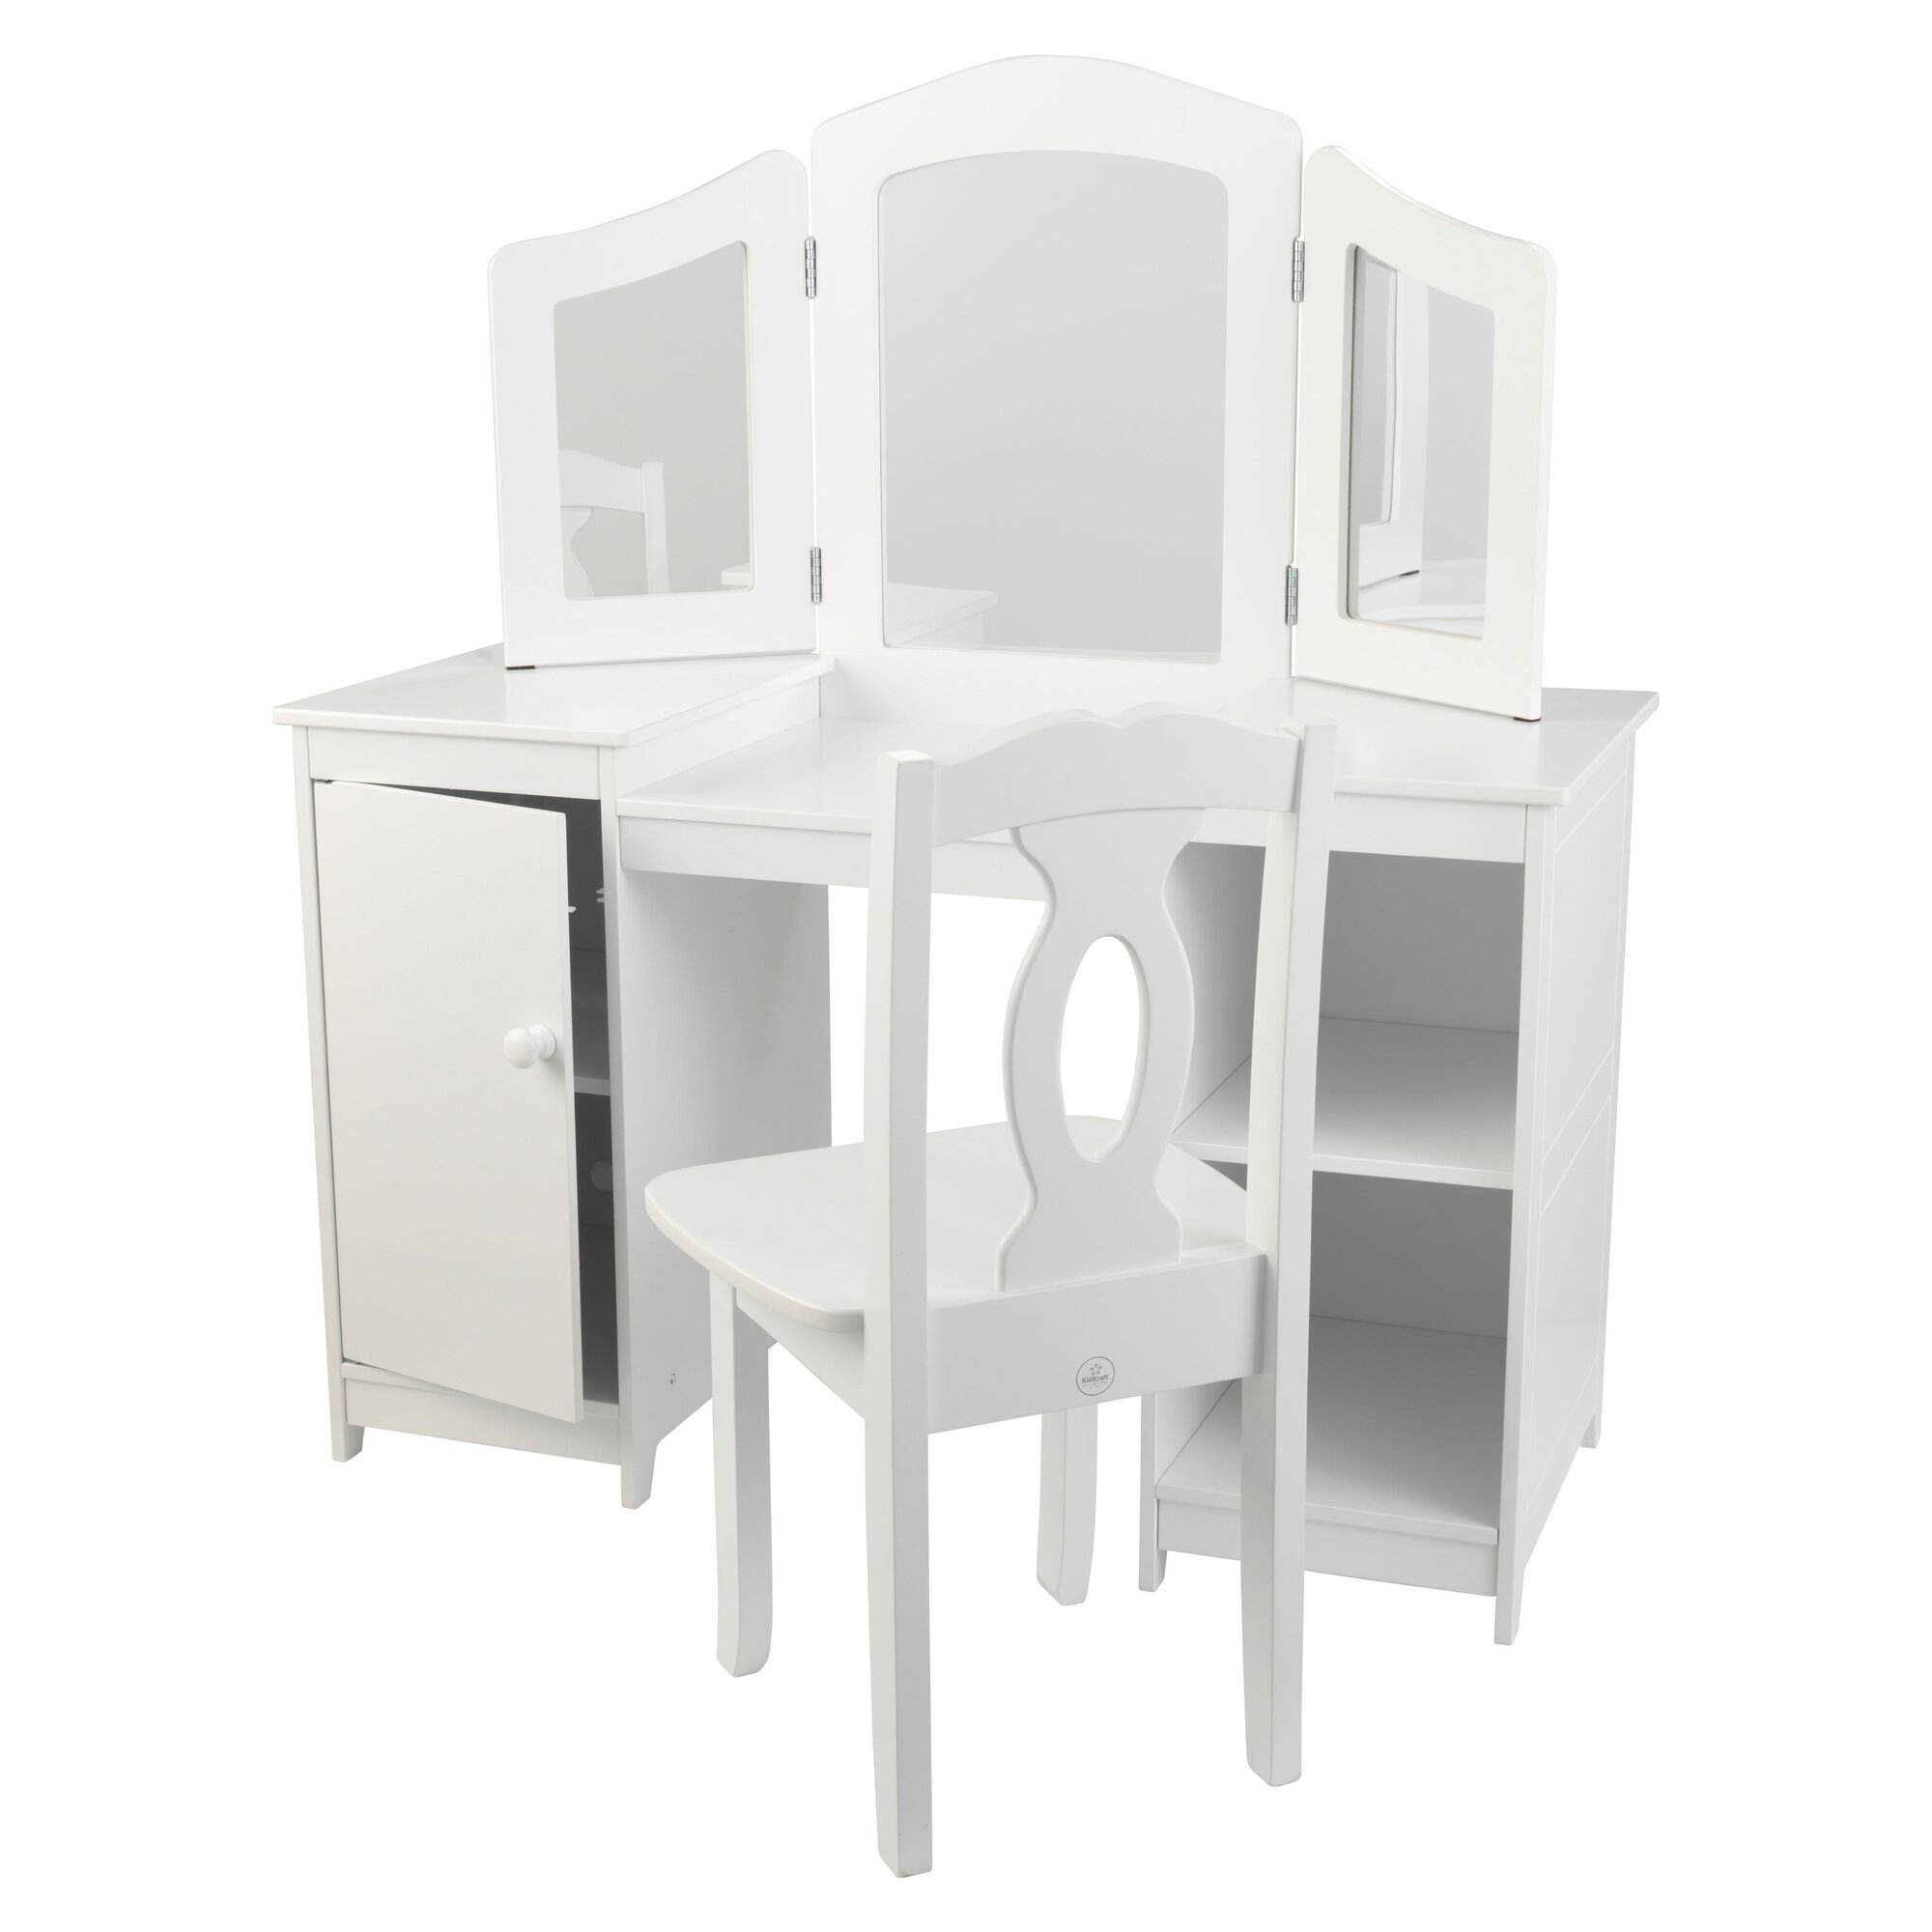 Kidkraft 2 Piece Retro Kitchen White